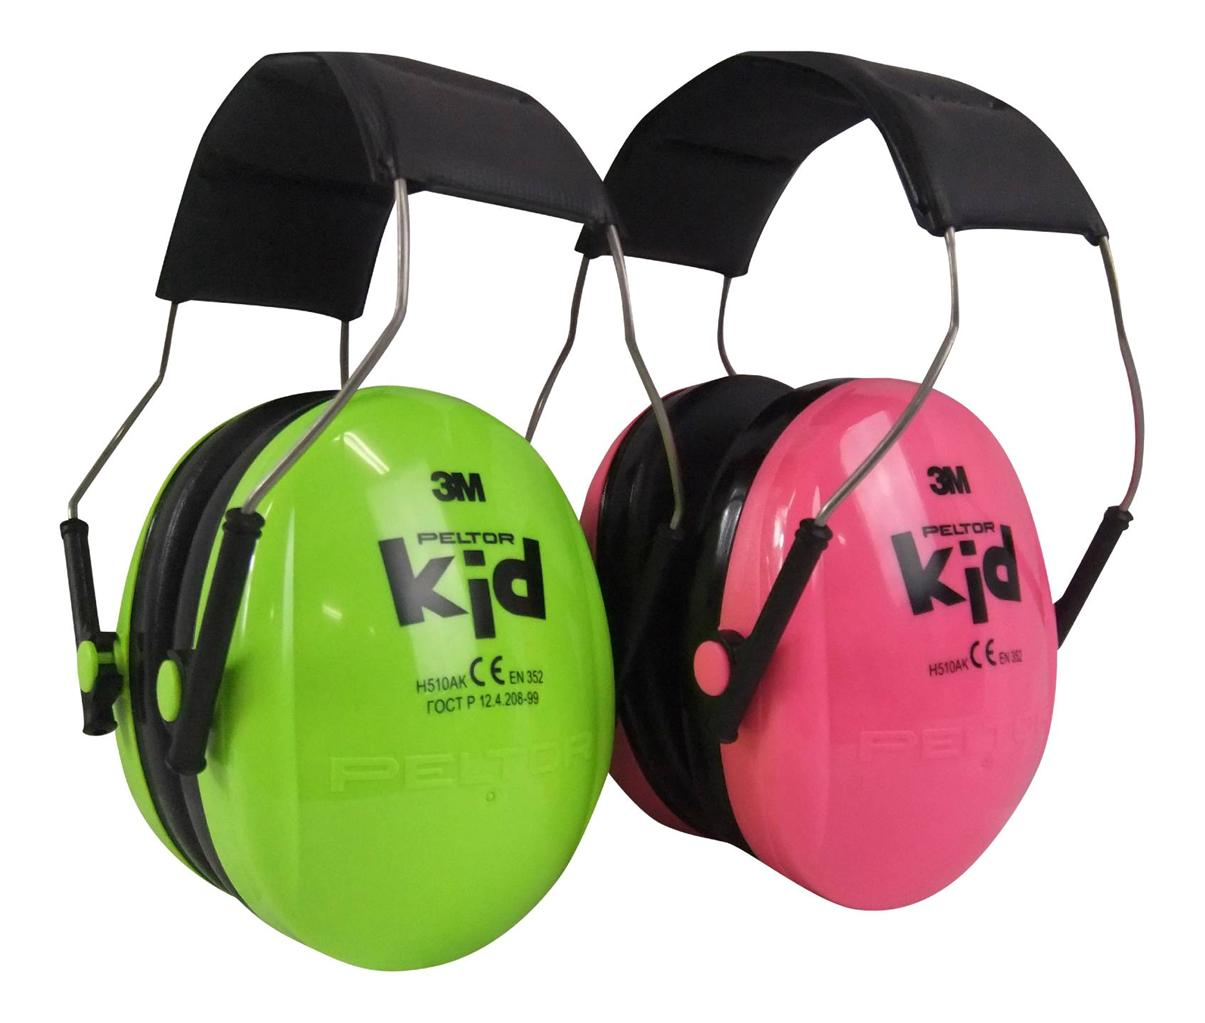 3M Peltor Kid Earmuff (Up to 7 yrs) H510AK (Peach)